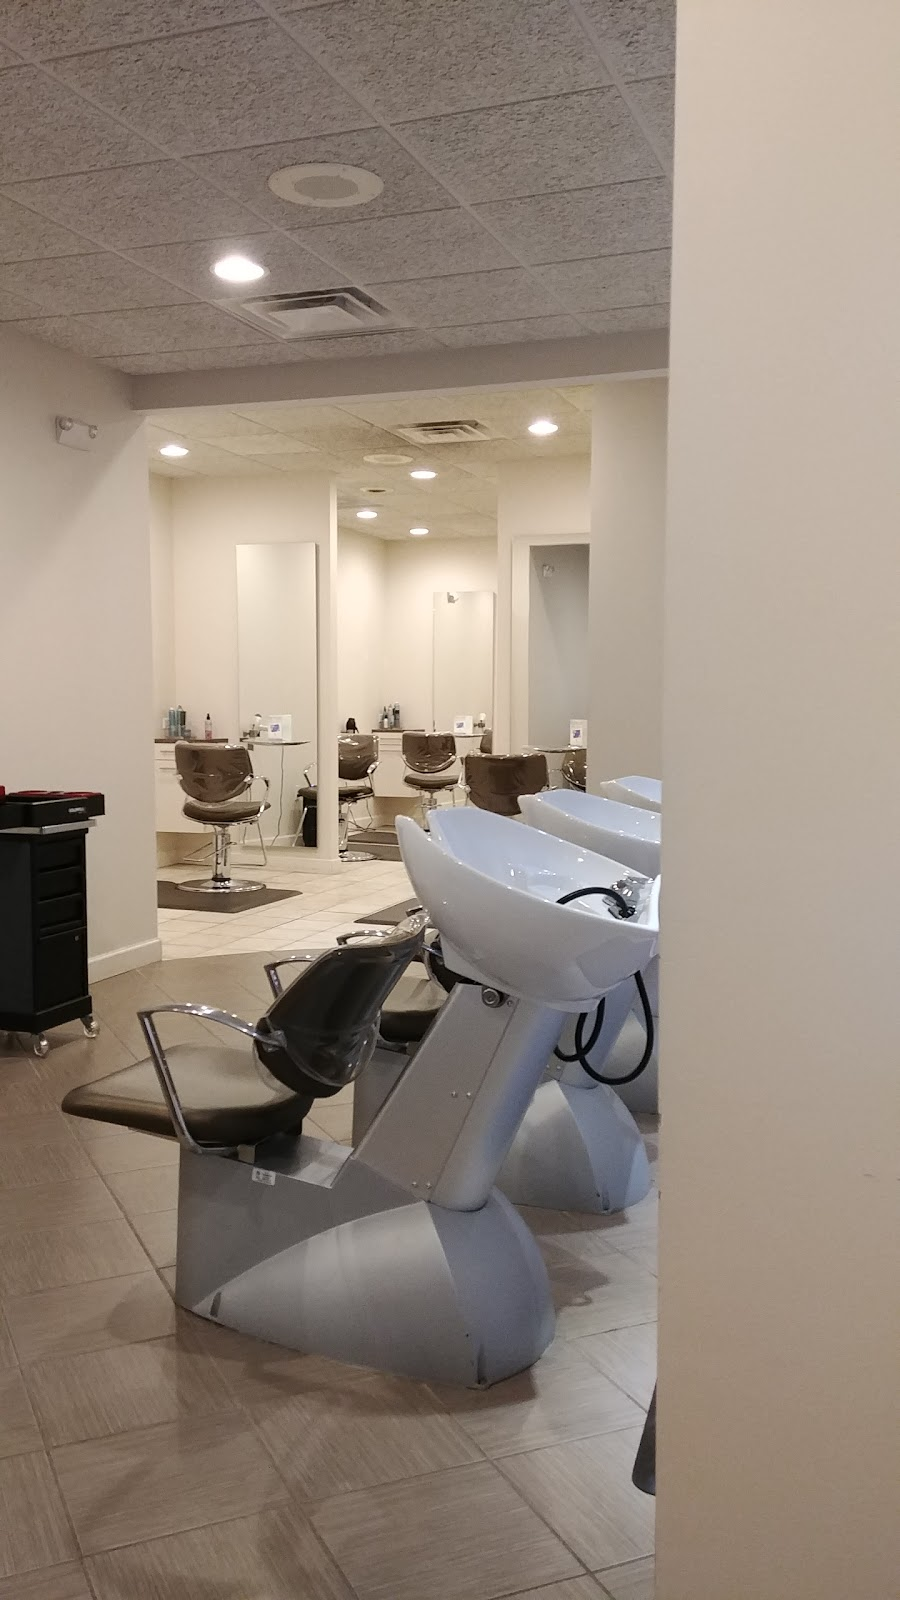 Park West Hair Design & Spa